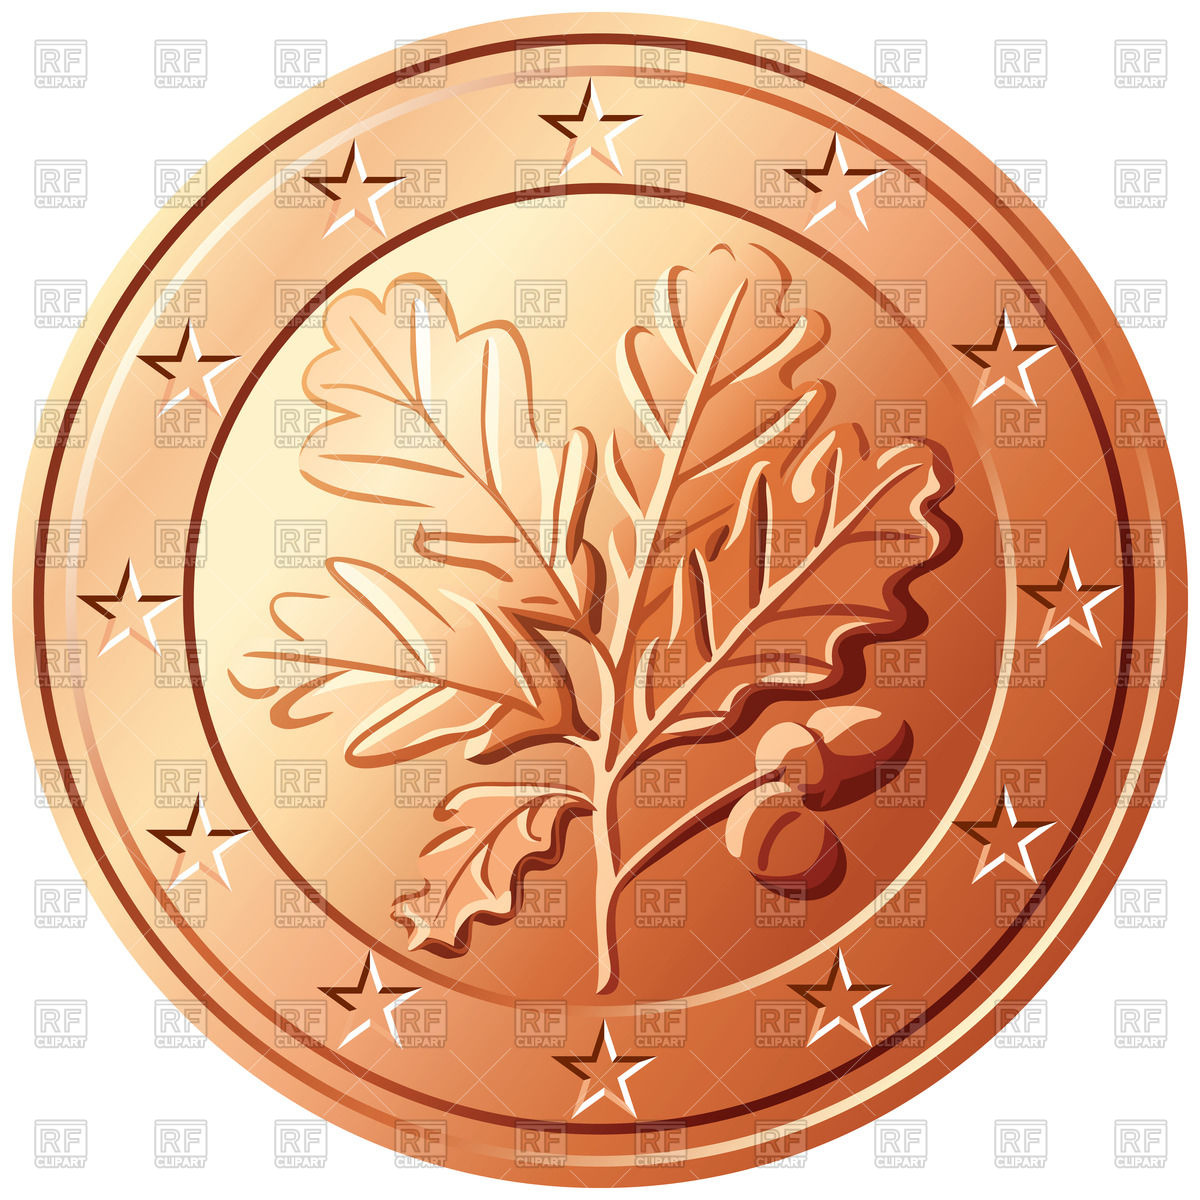 German coin with oak leaf.